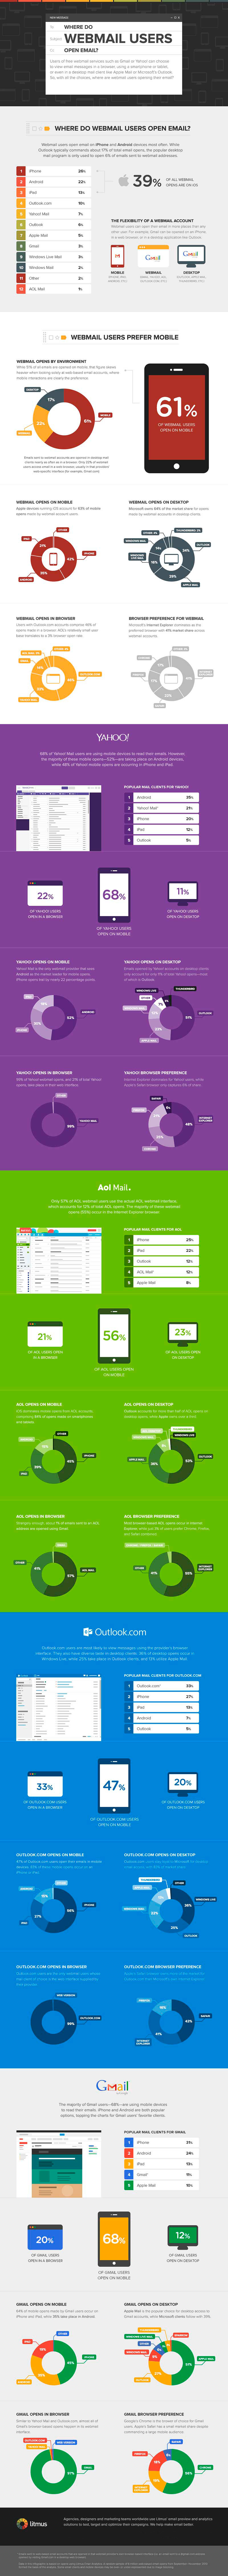 email marketing herramienta fundamental movil